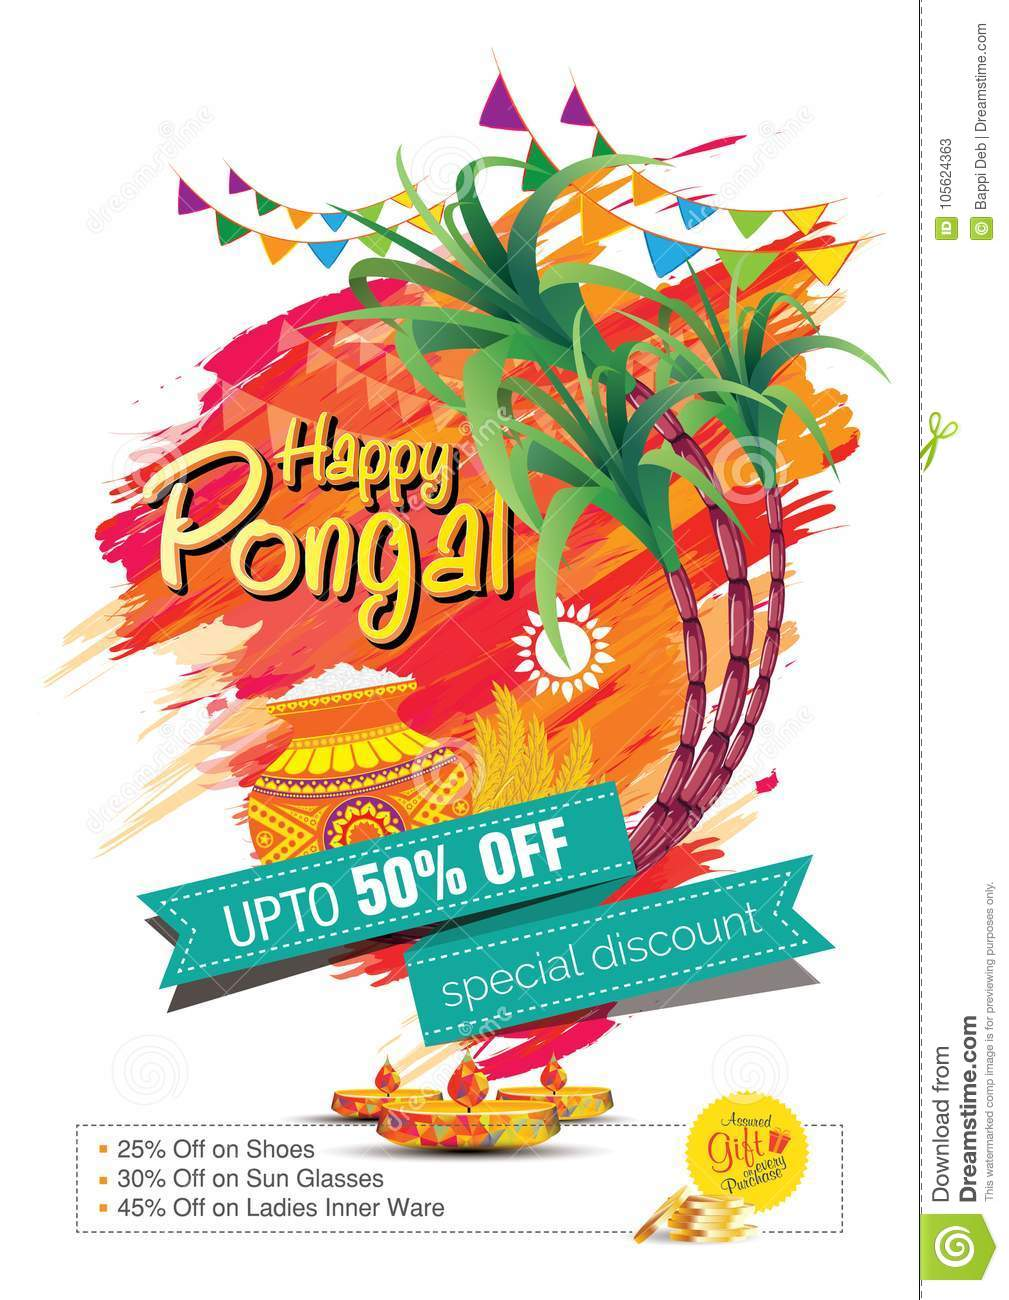 Happy pongal greetings background template design stock vector download happy pongal greetings background template design stock vector illustration of discount india m4hsunfo